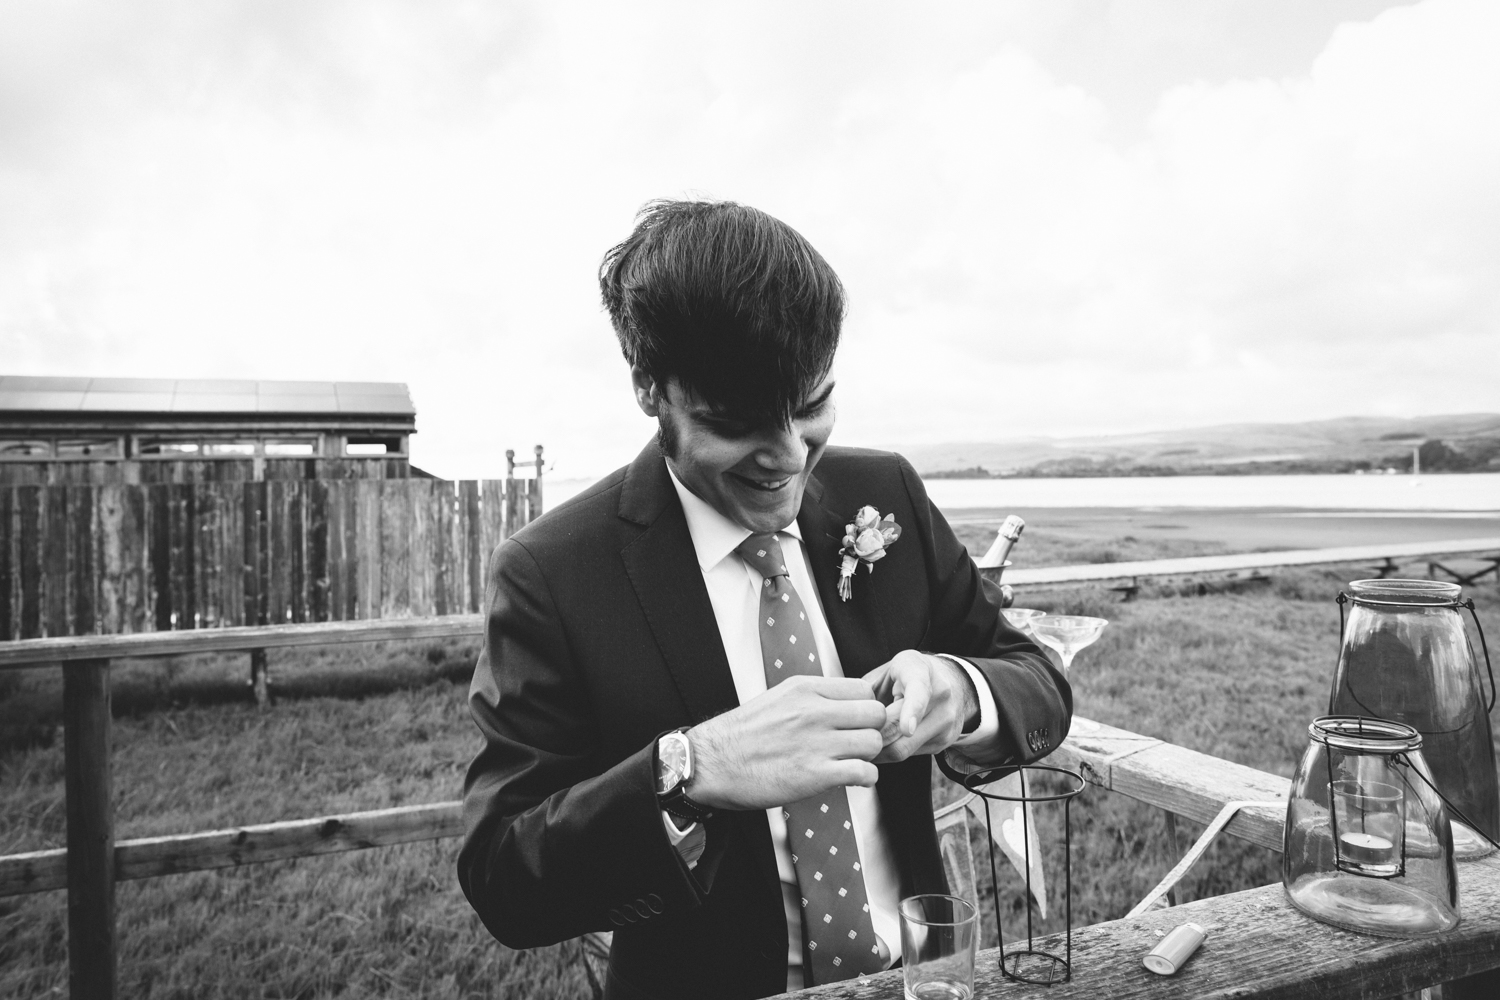 Point Reyes Inverness Wedding Photographer Rachelle Derouin-35.jpg